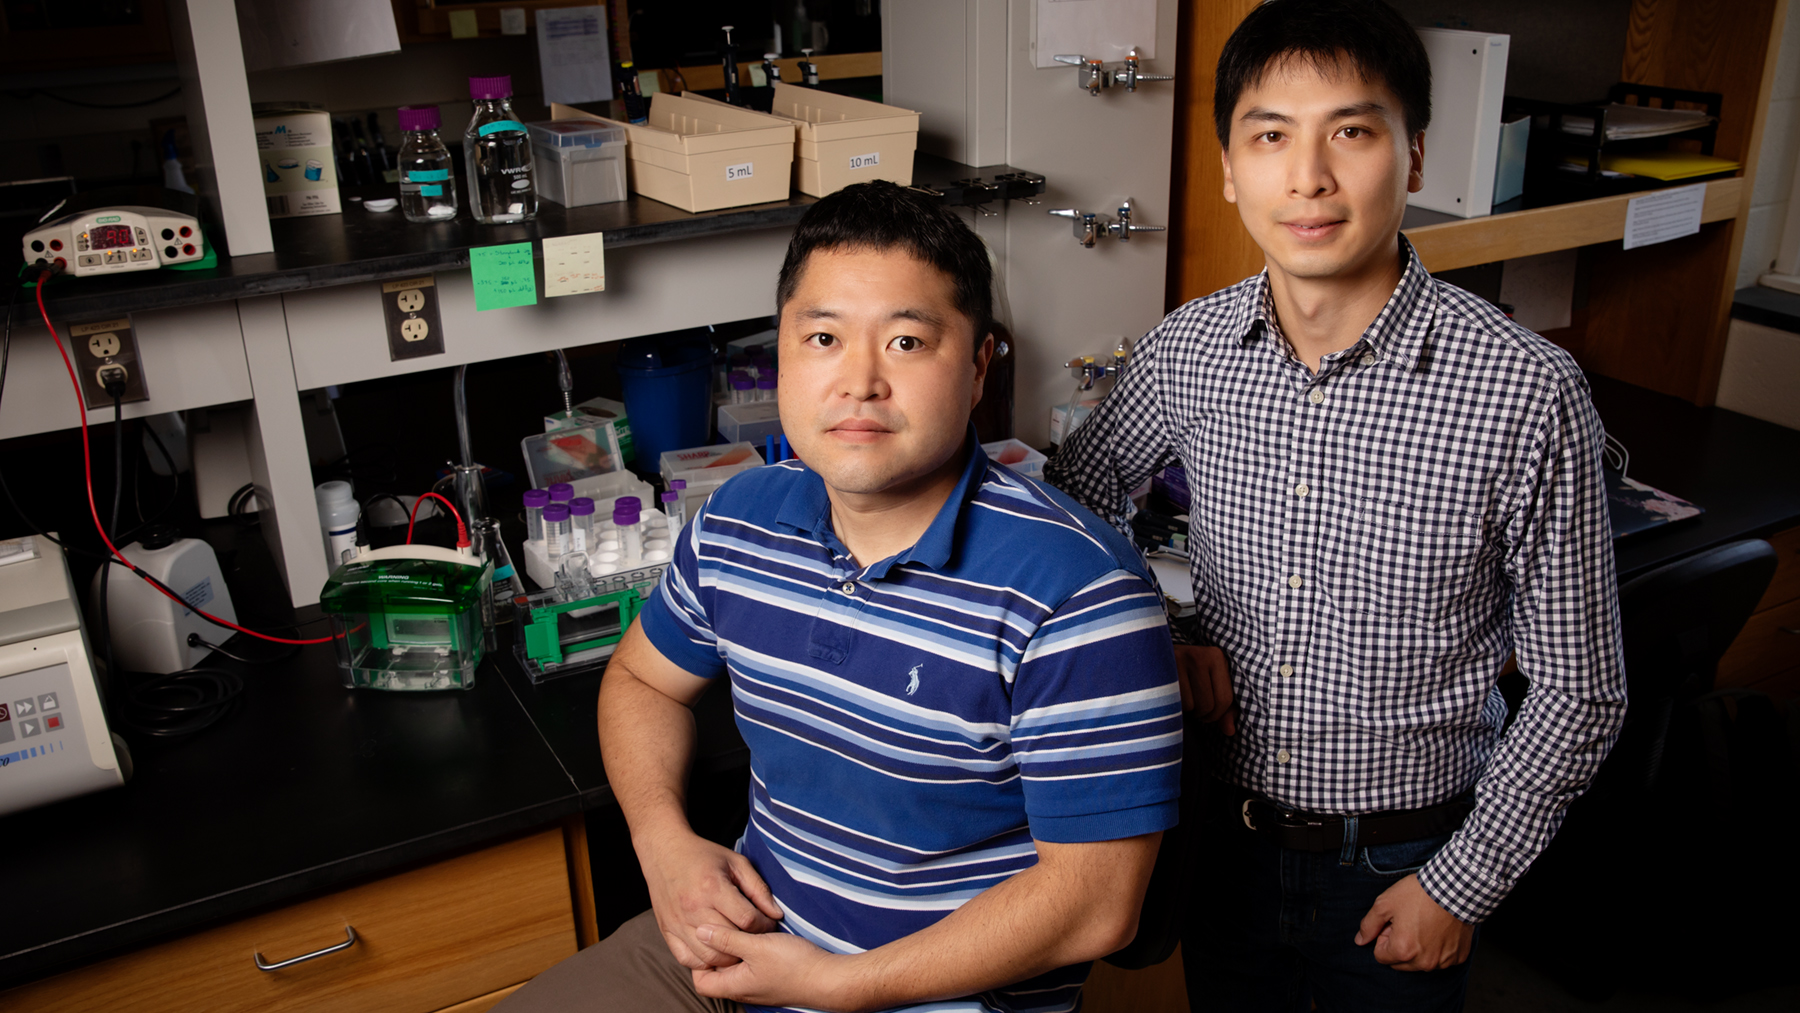 Researchers Nien-Pei Tsai and Kwan Young Lee. Photo by L. Brian Stauffer